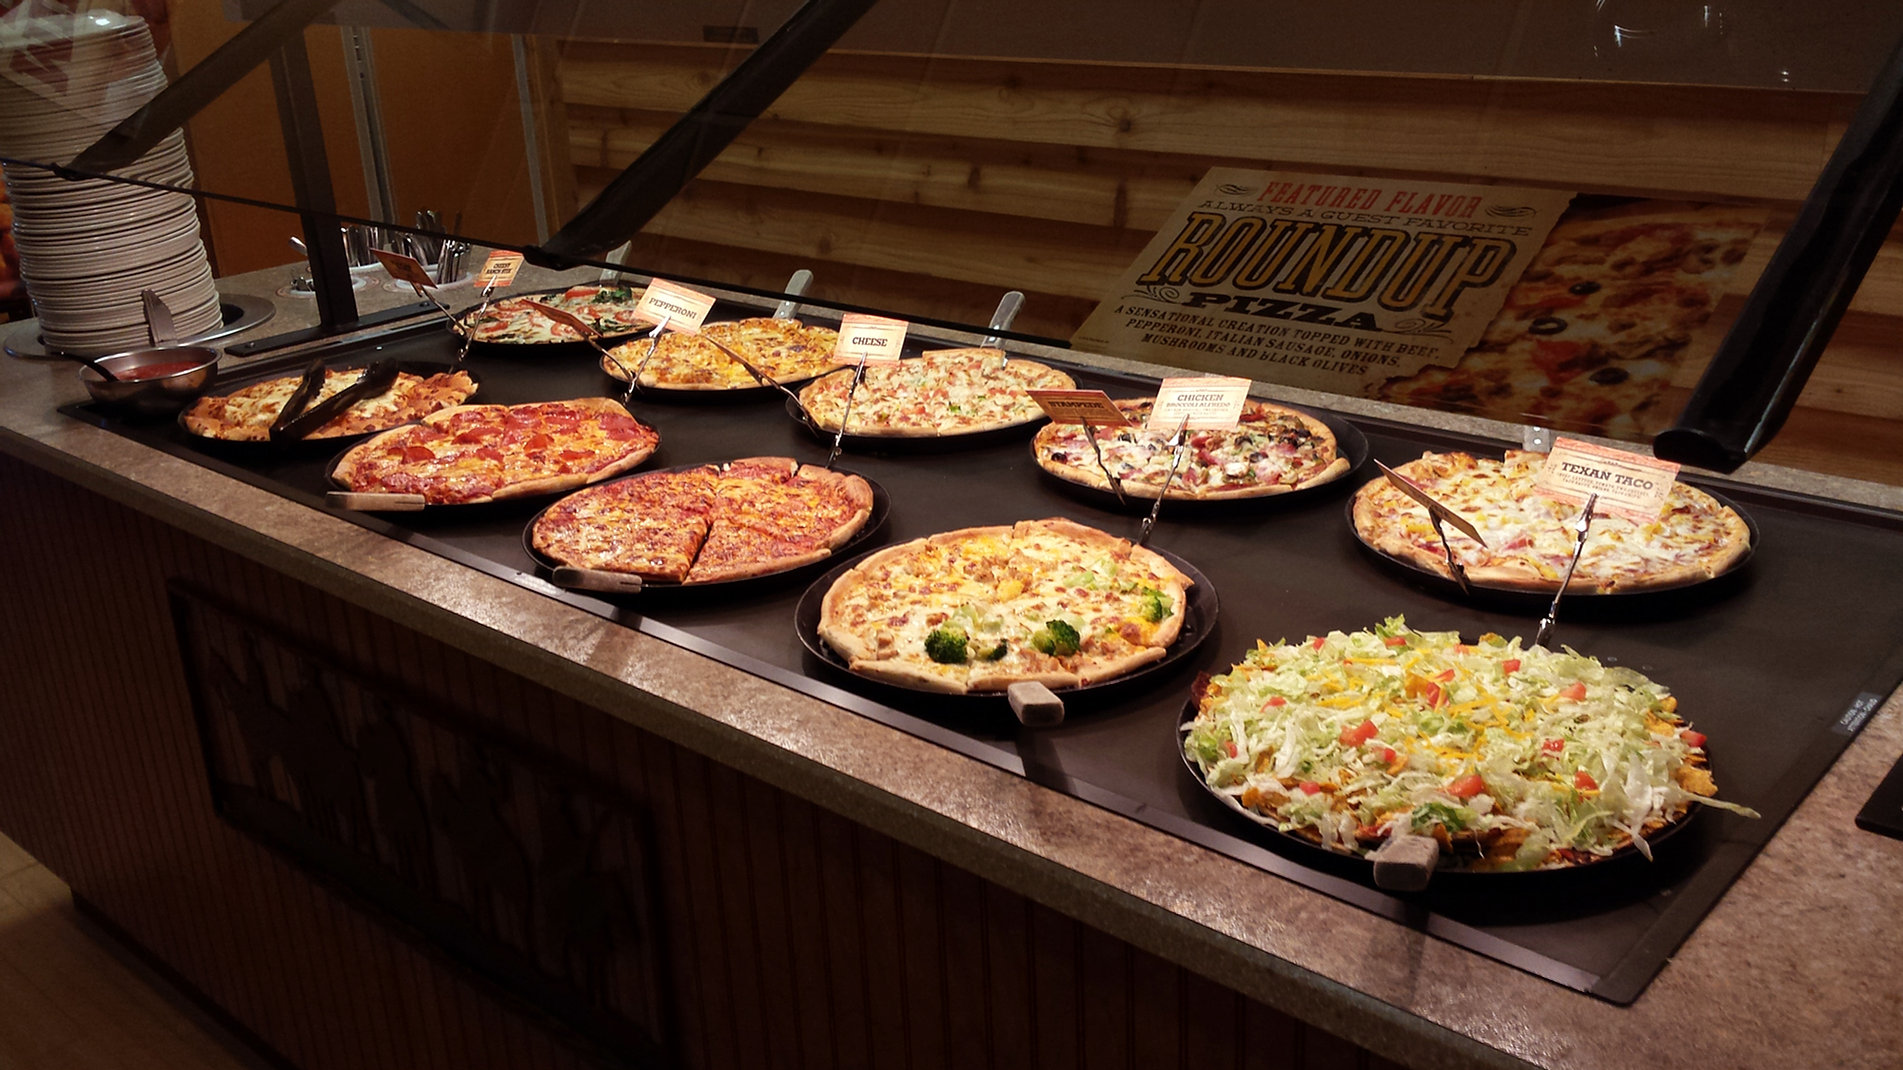 Pizza Ranch is a family-friendly buffet restaurant offering pizza, chicken, salad bar and dessert. 4/4(8).